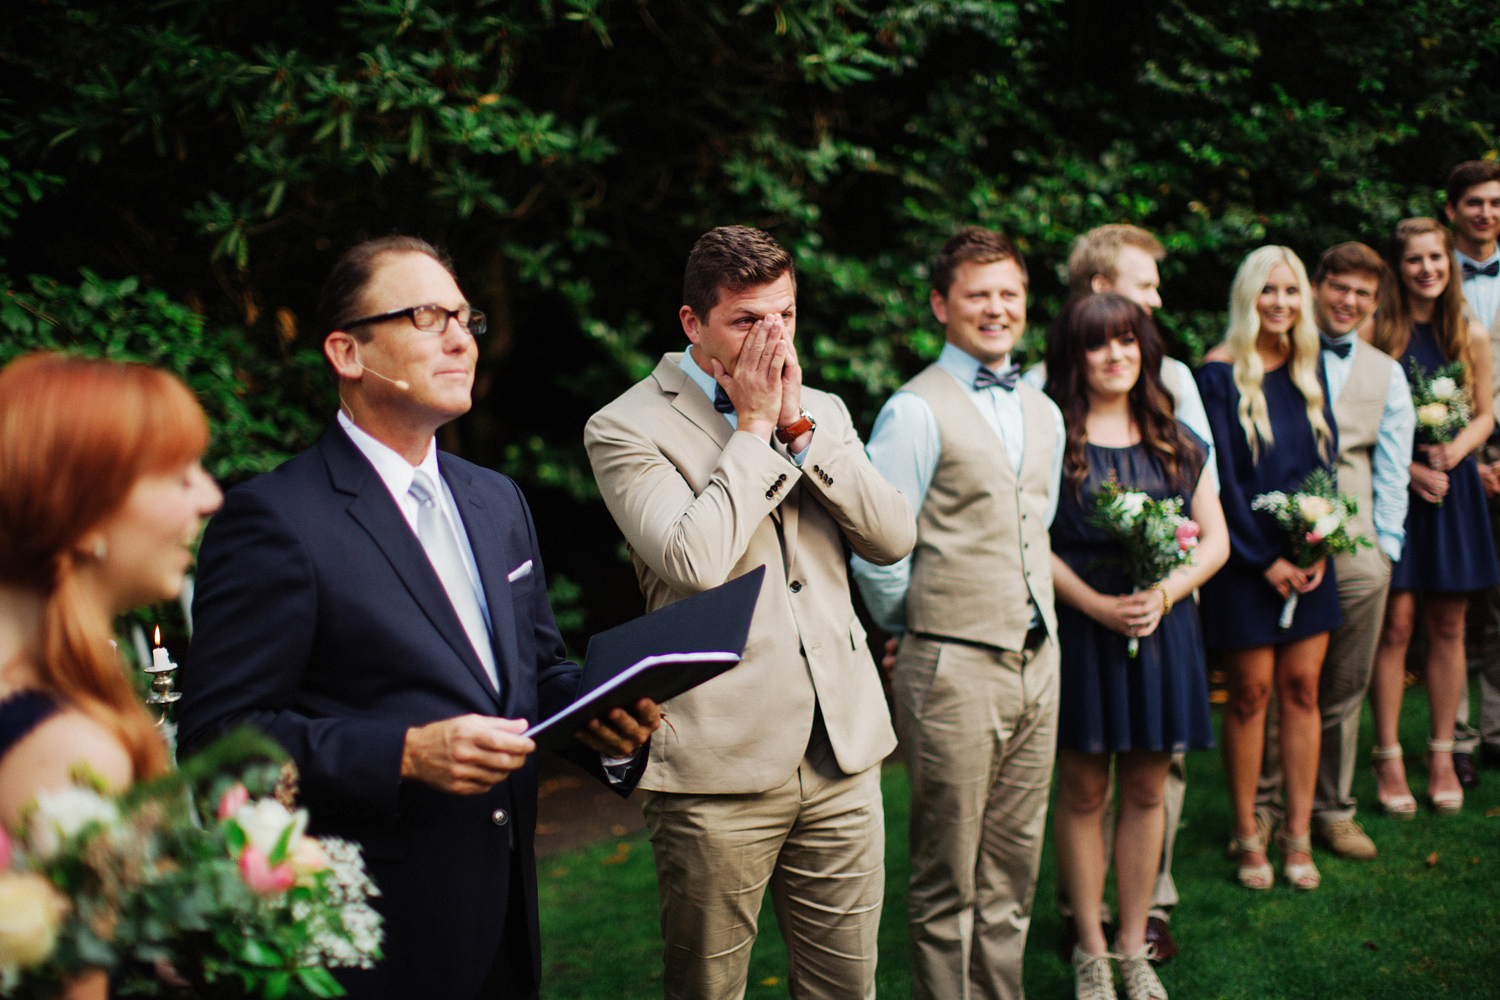 ryan-flynn-photography-best-wedding-photos-2014-0172.JPG